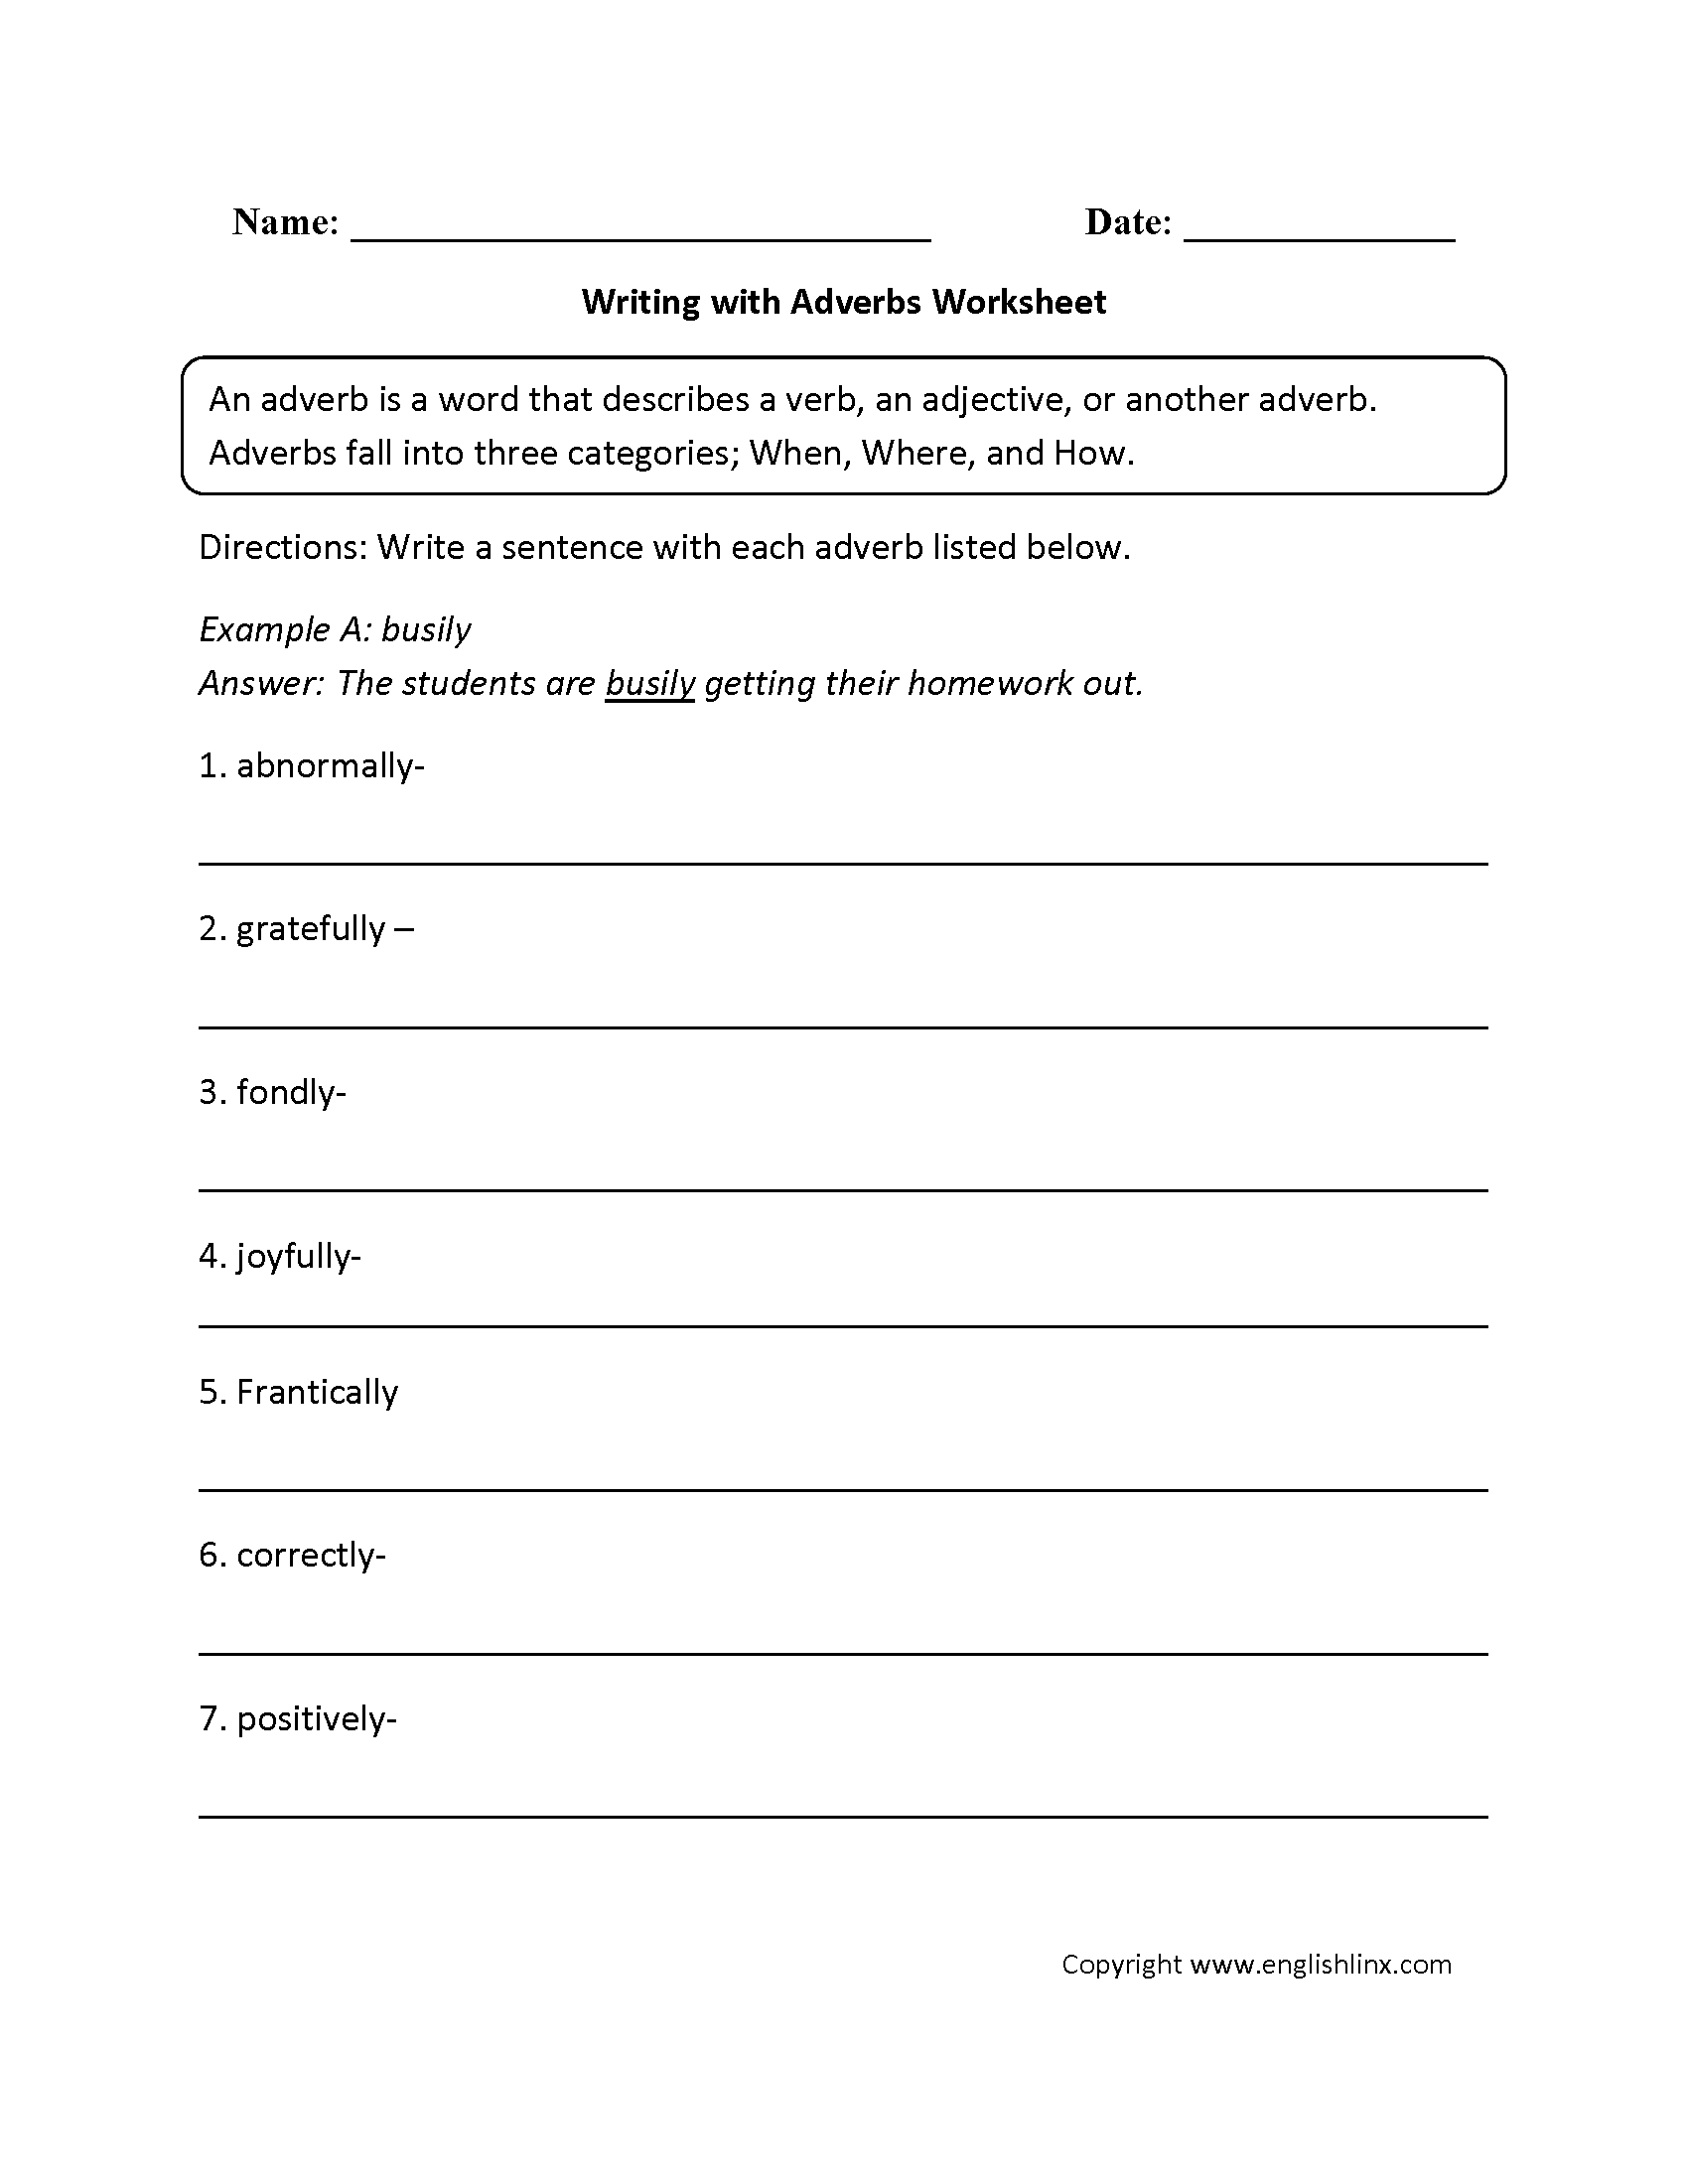 Adverbs Worksheets  Regular Adverbs Worksheets Within Adverb Worksheets Pdf